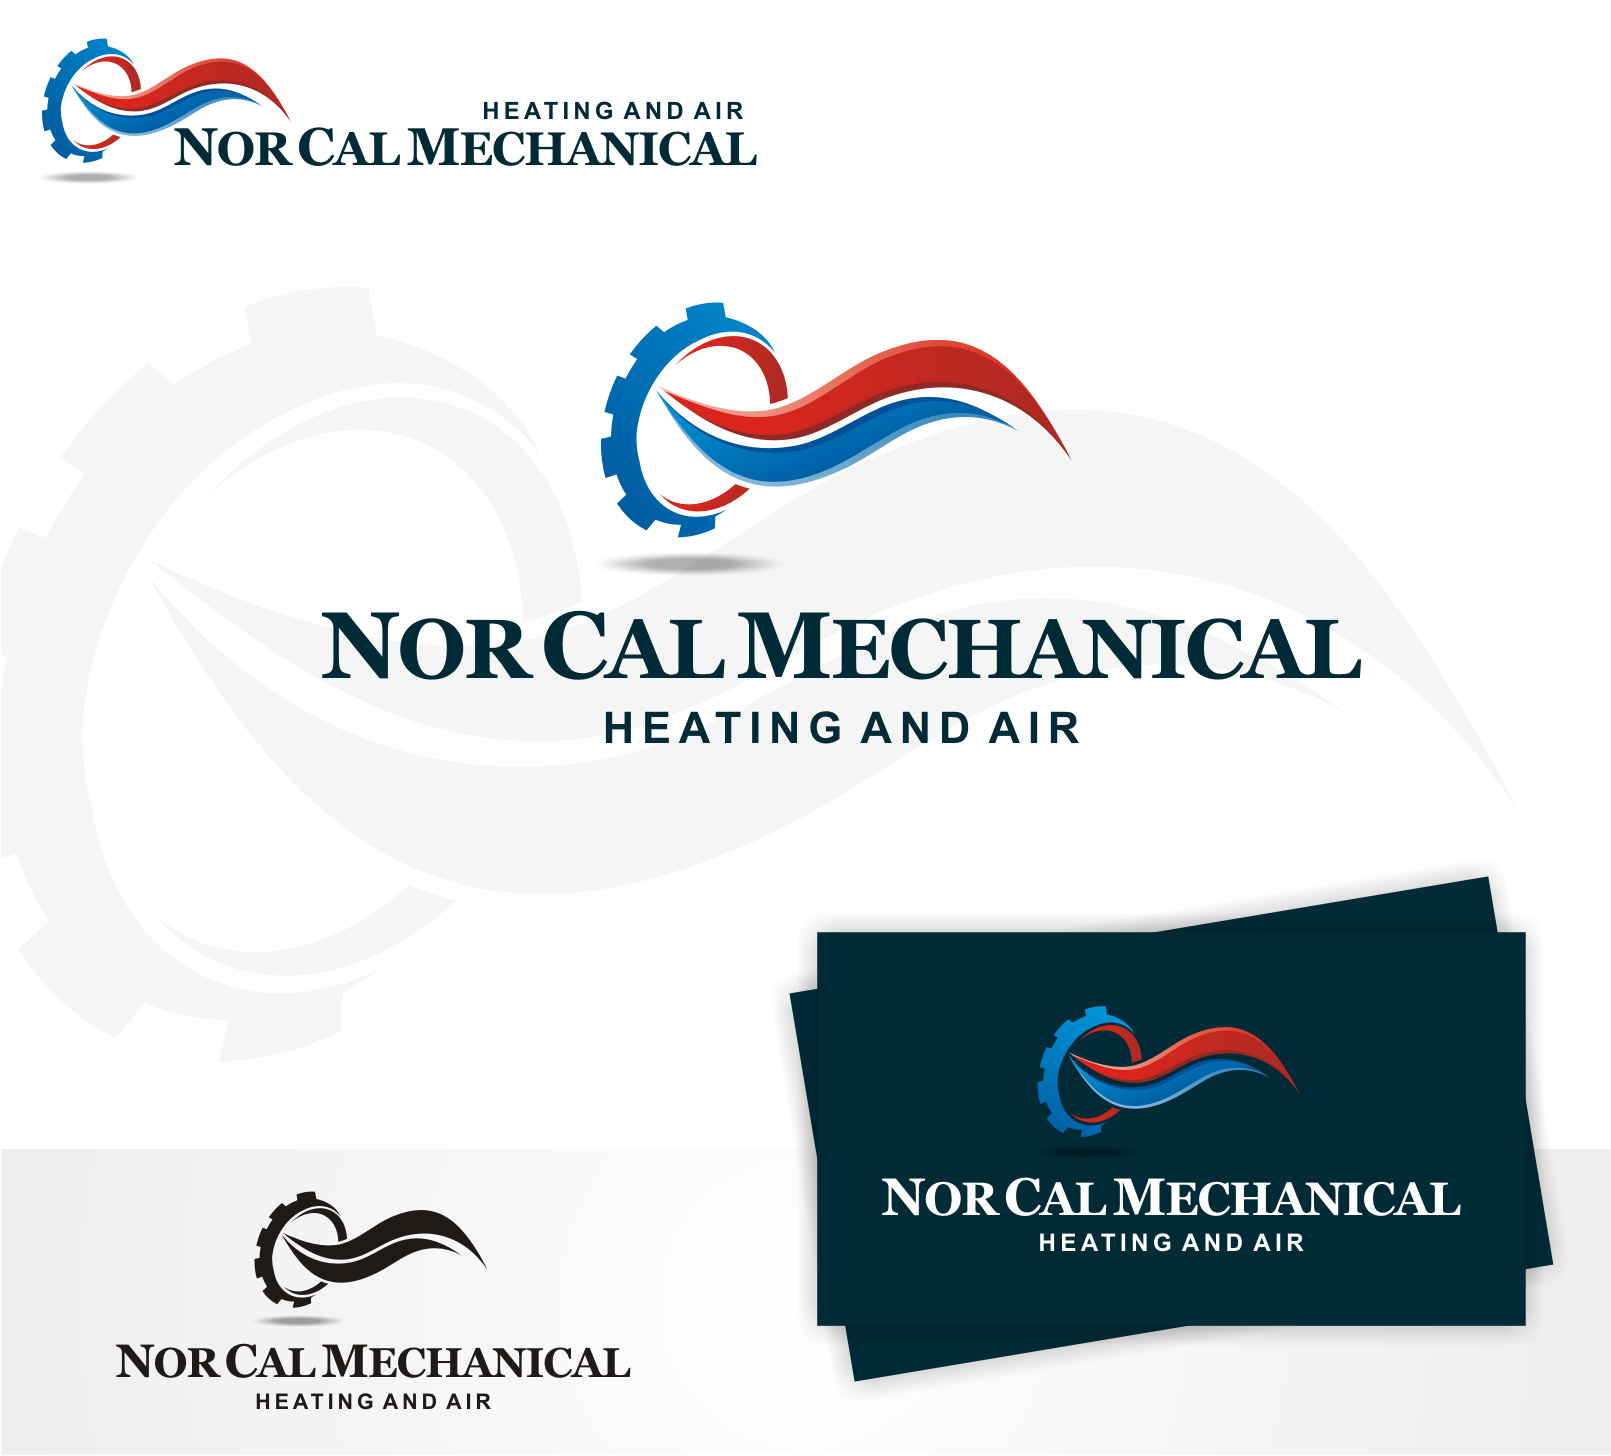 Bring new life to our logo:  Nor Cal Mechanical Heating and Air